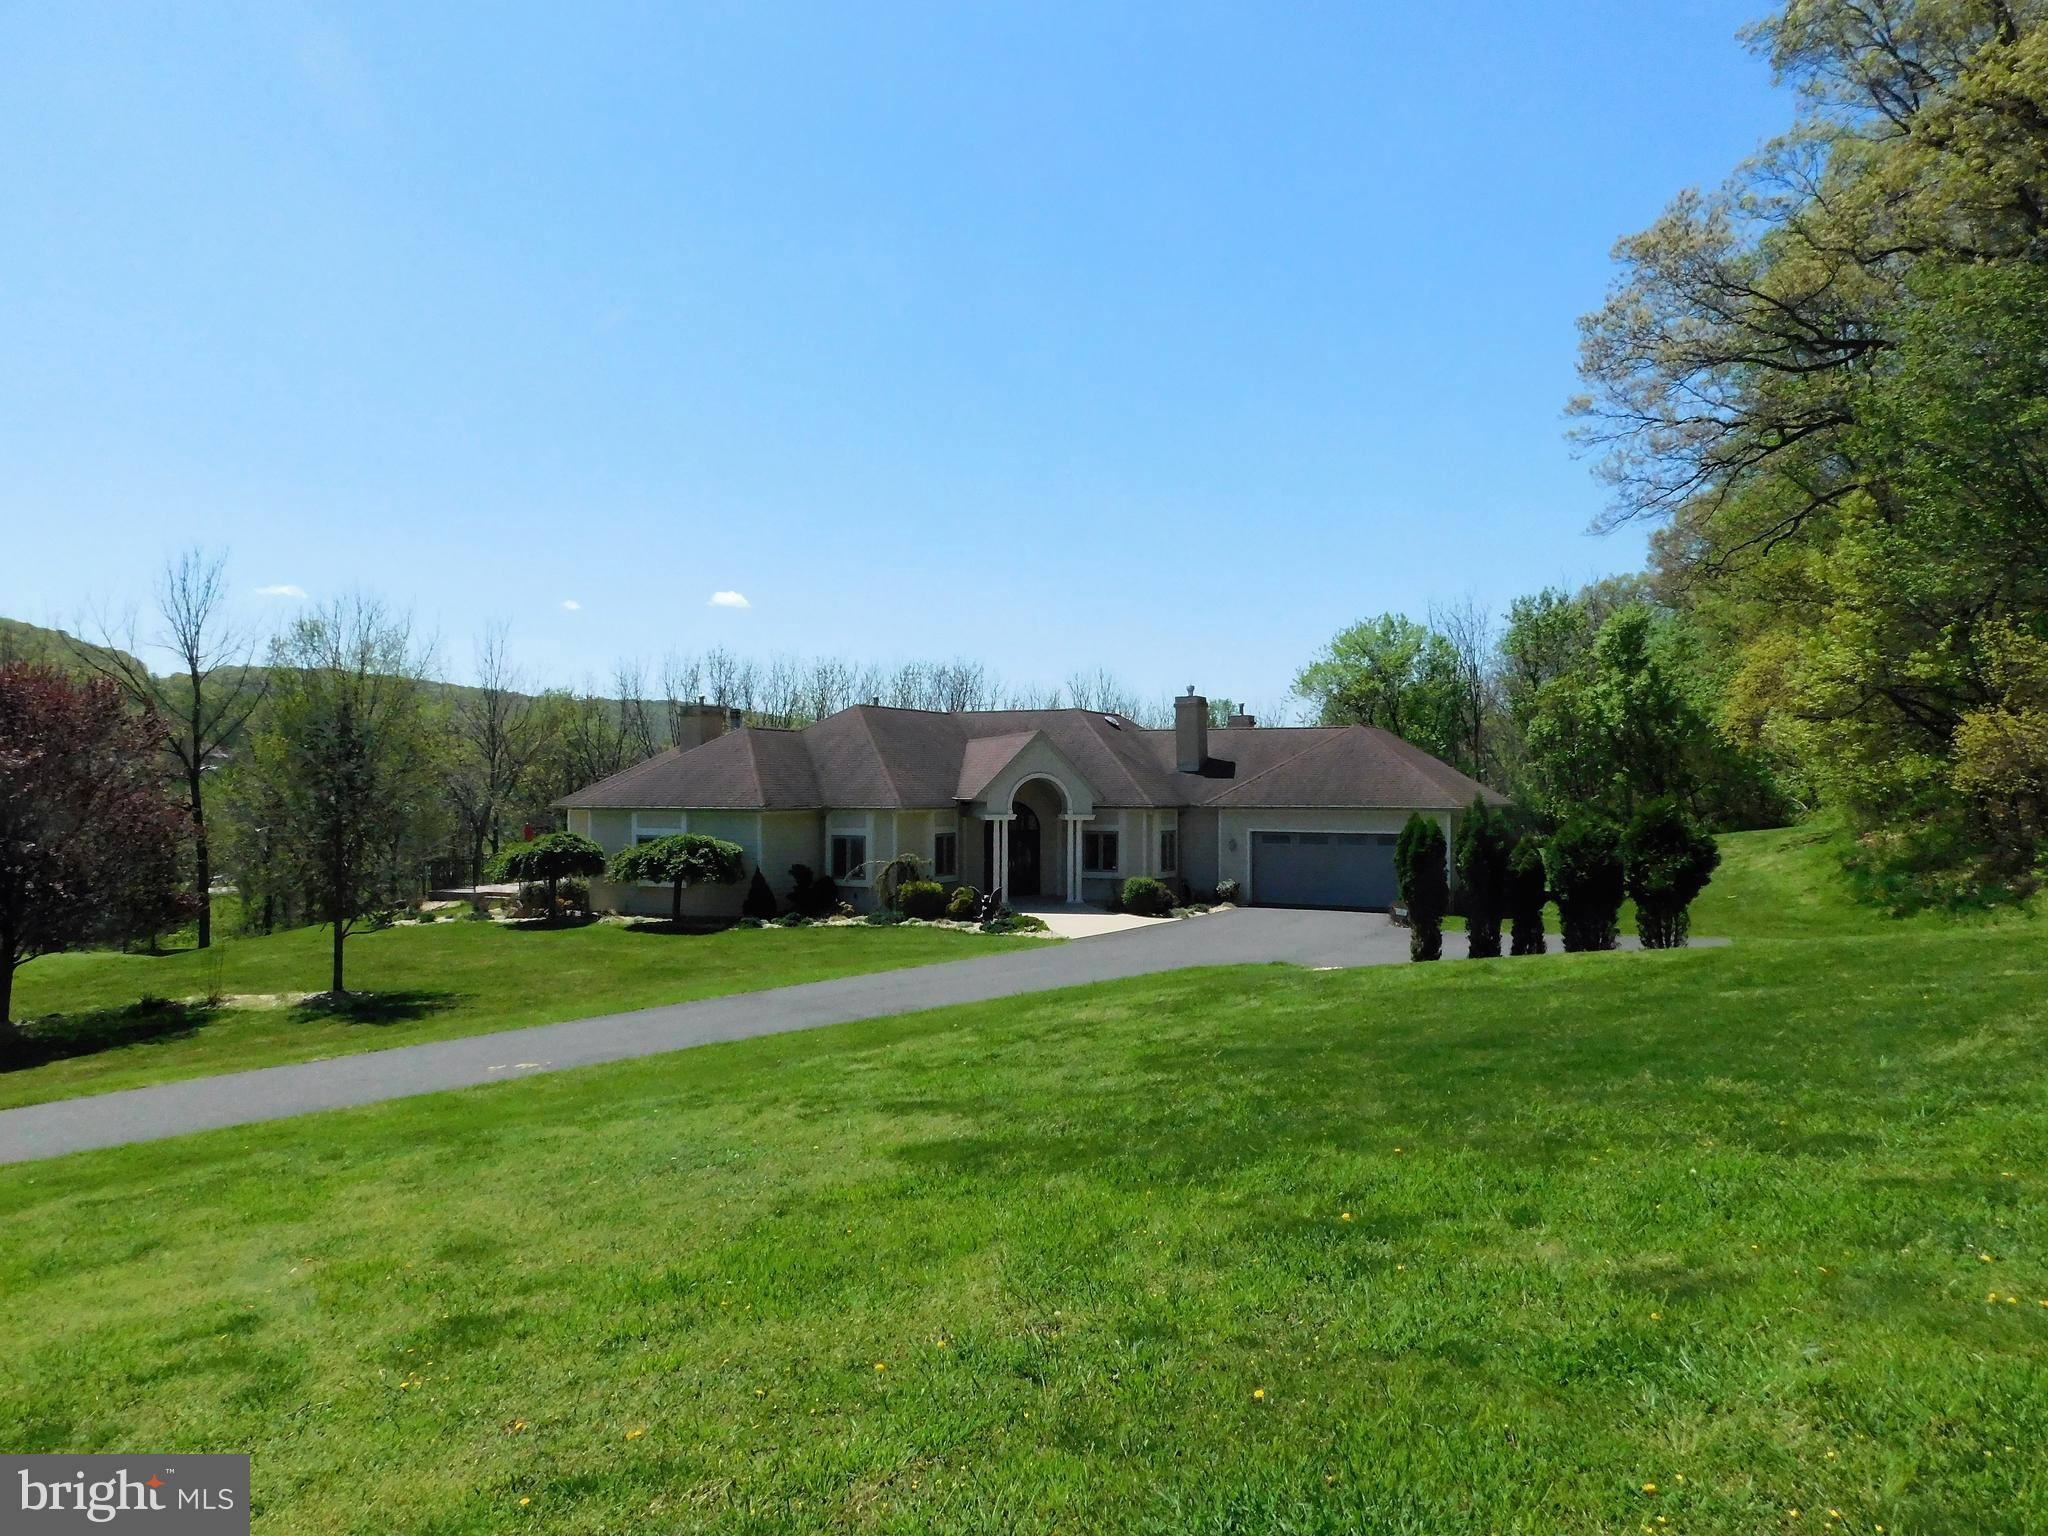 2326 HERB ROAD, TEMPLE, PA 19560